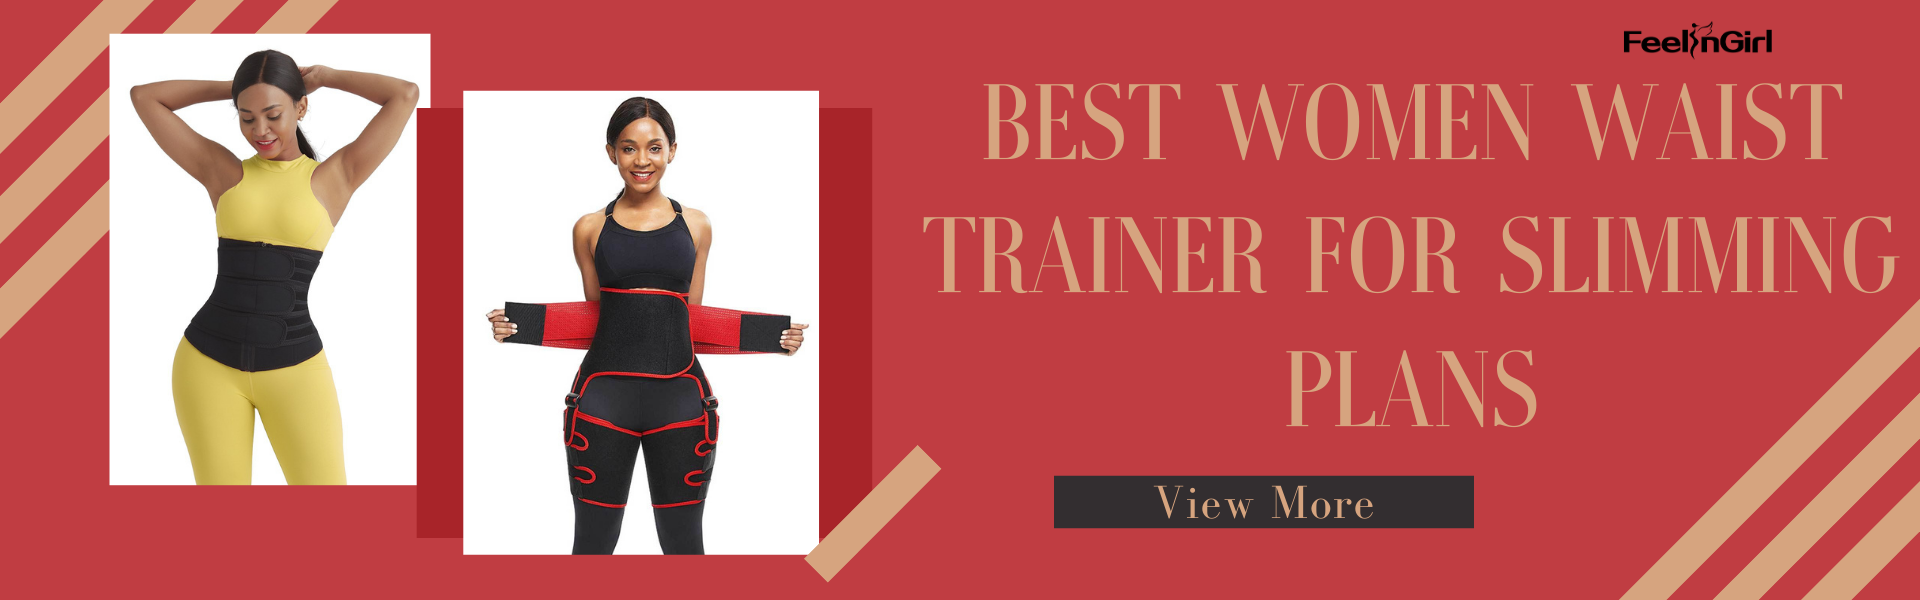 Best Women Waist Trainer for Slimming Plans